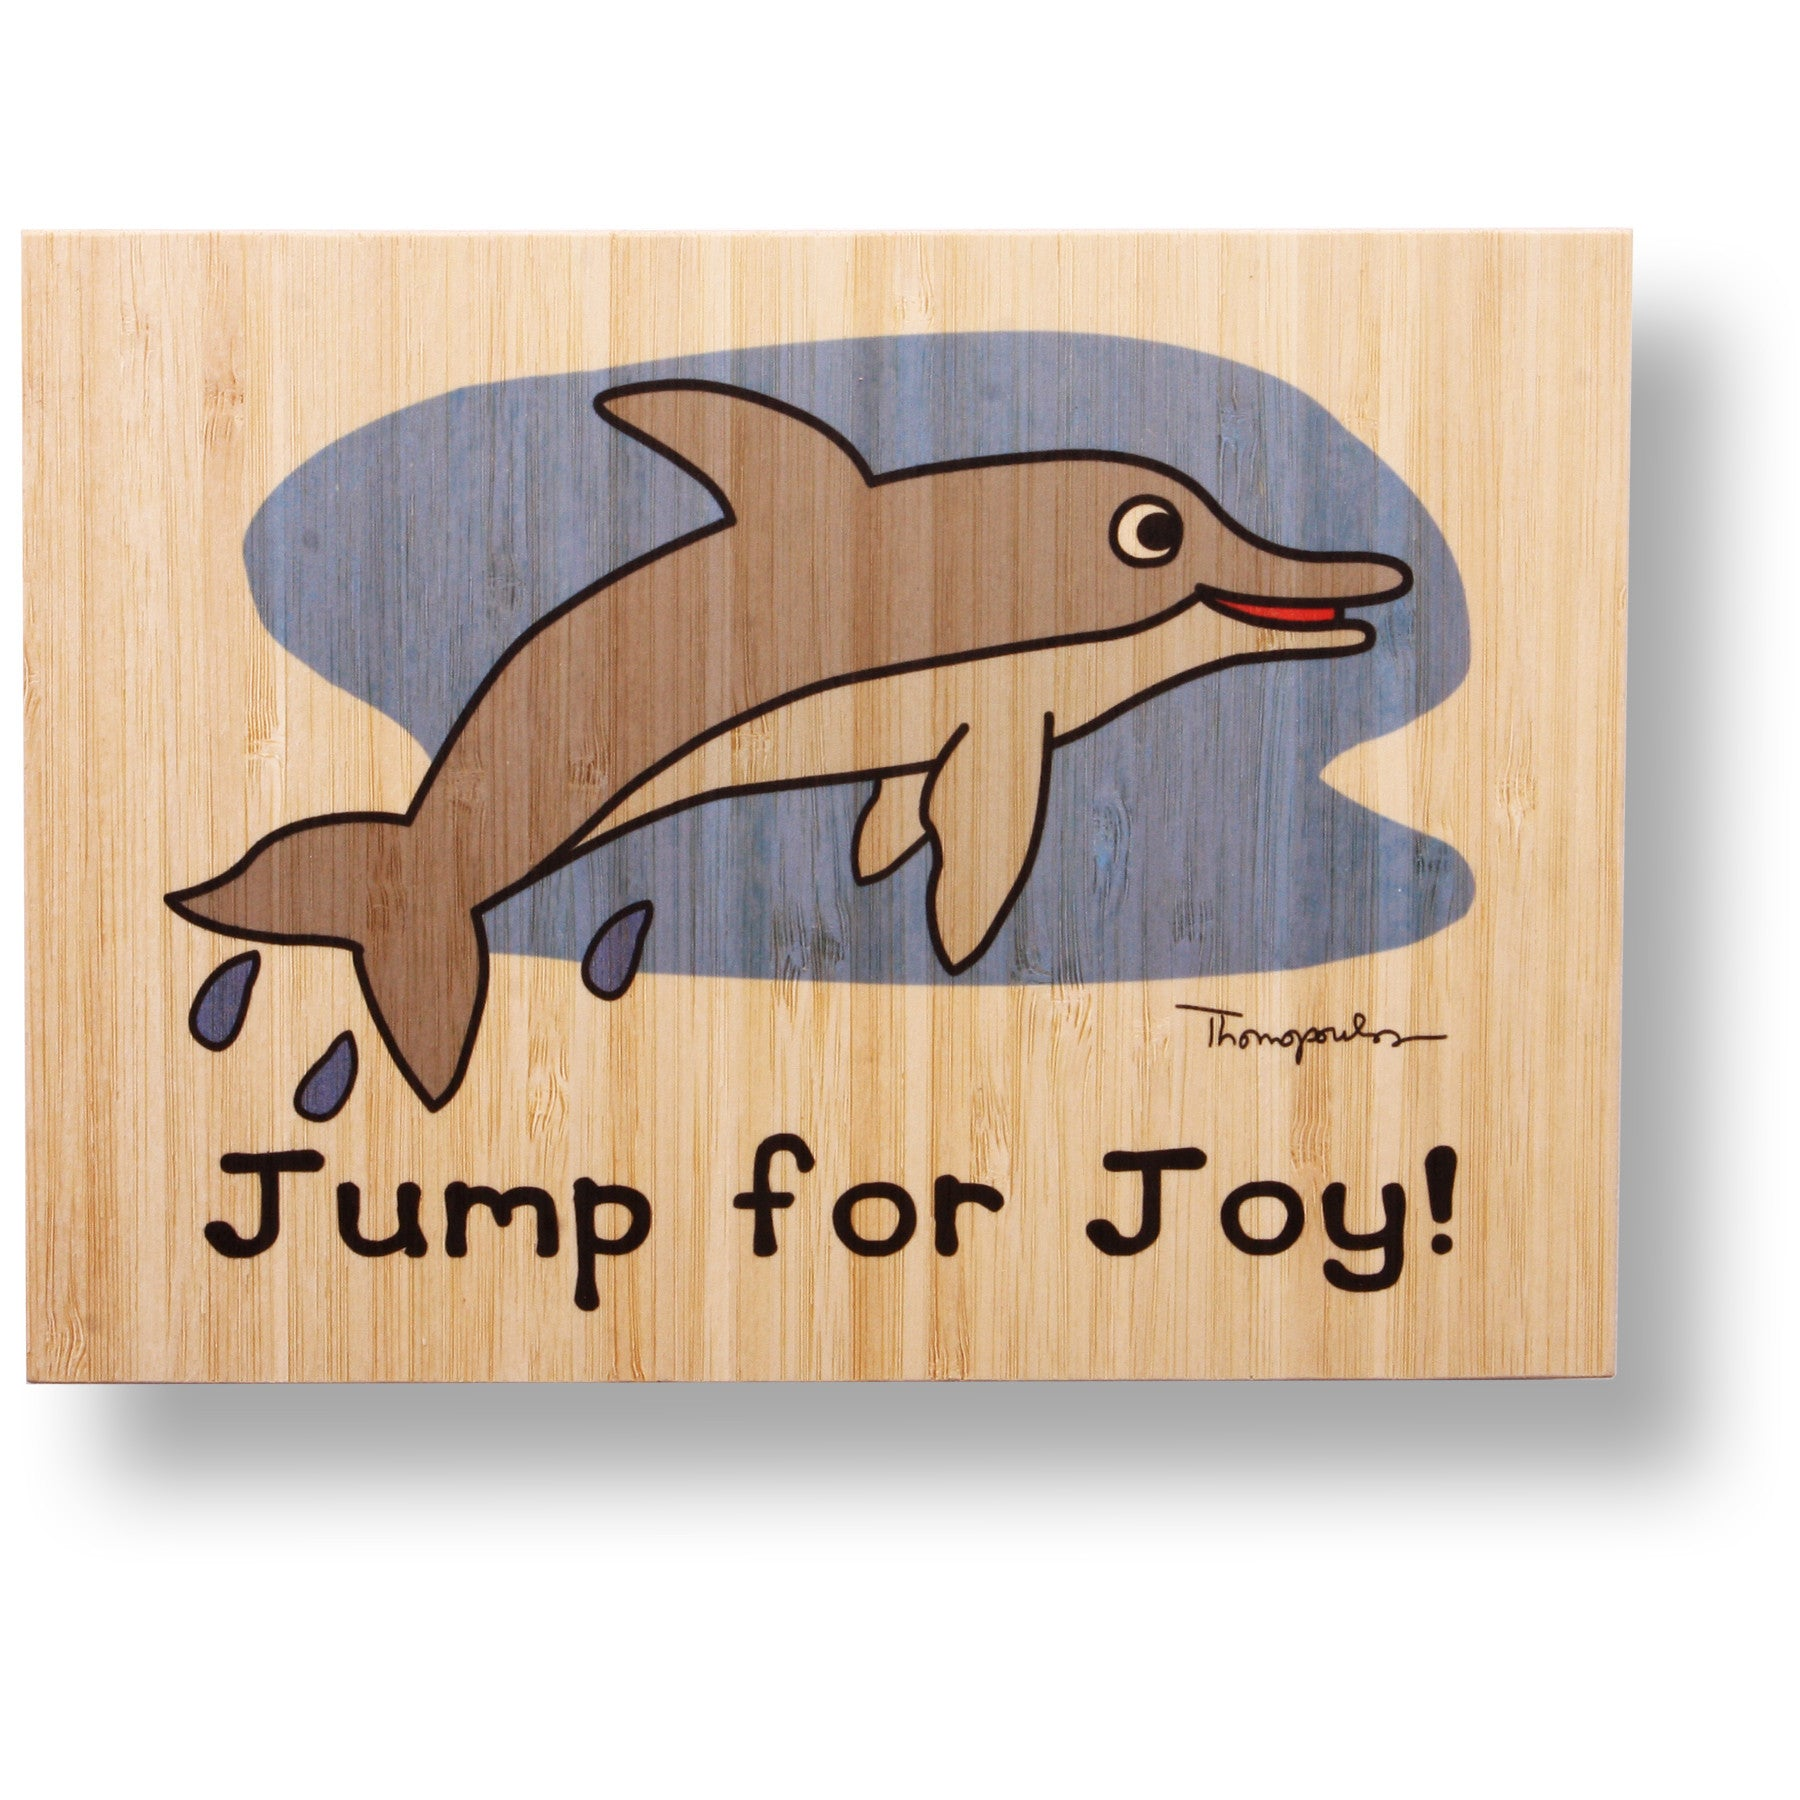 Jump for joy bamboo print